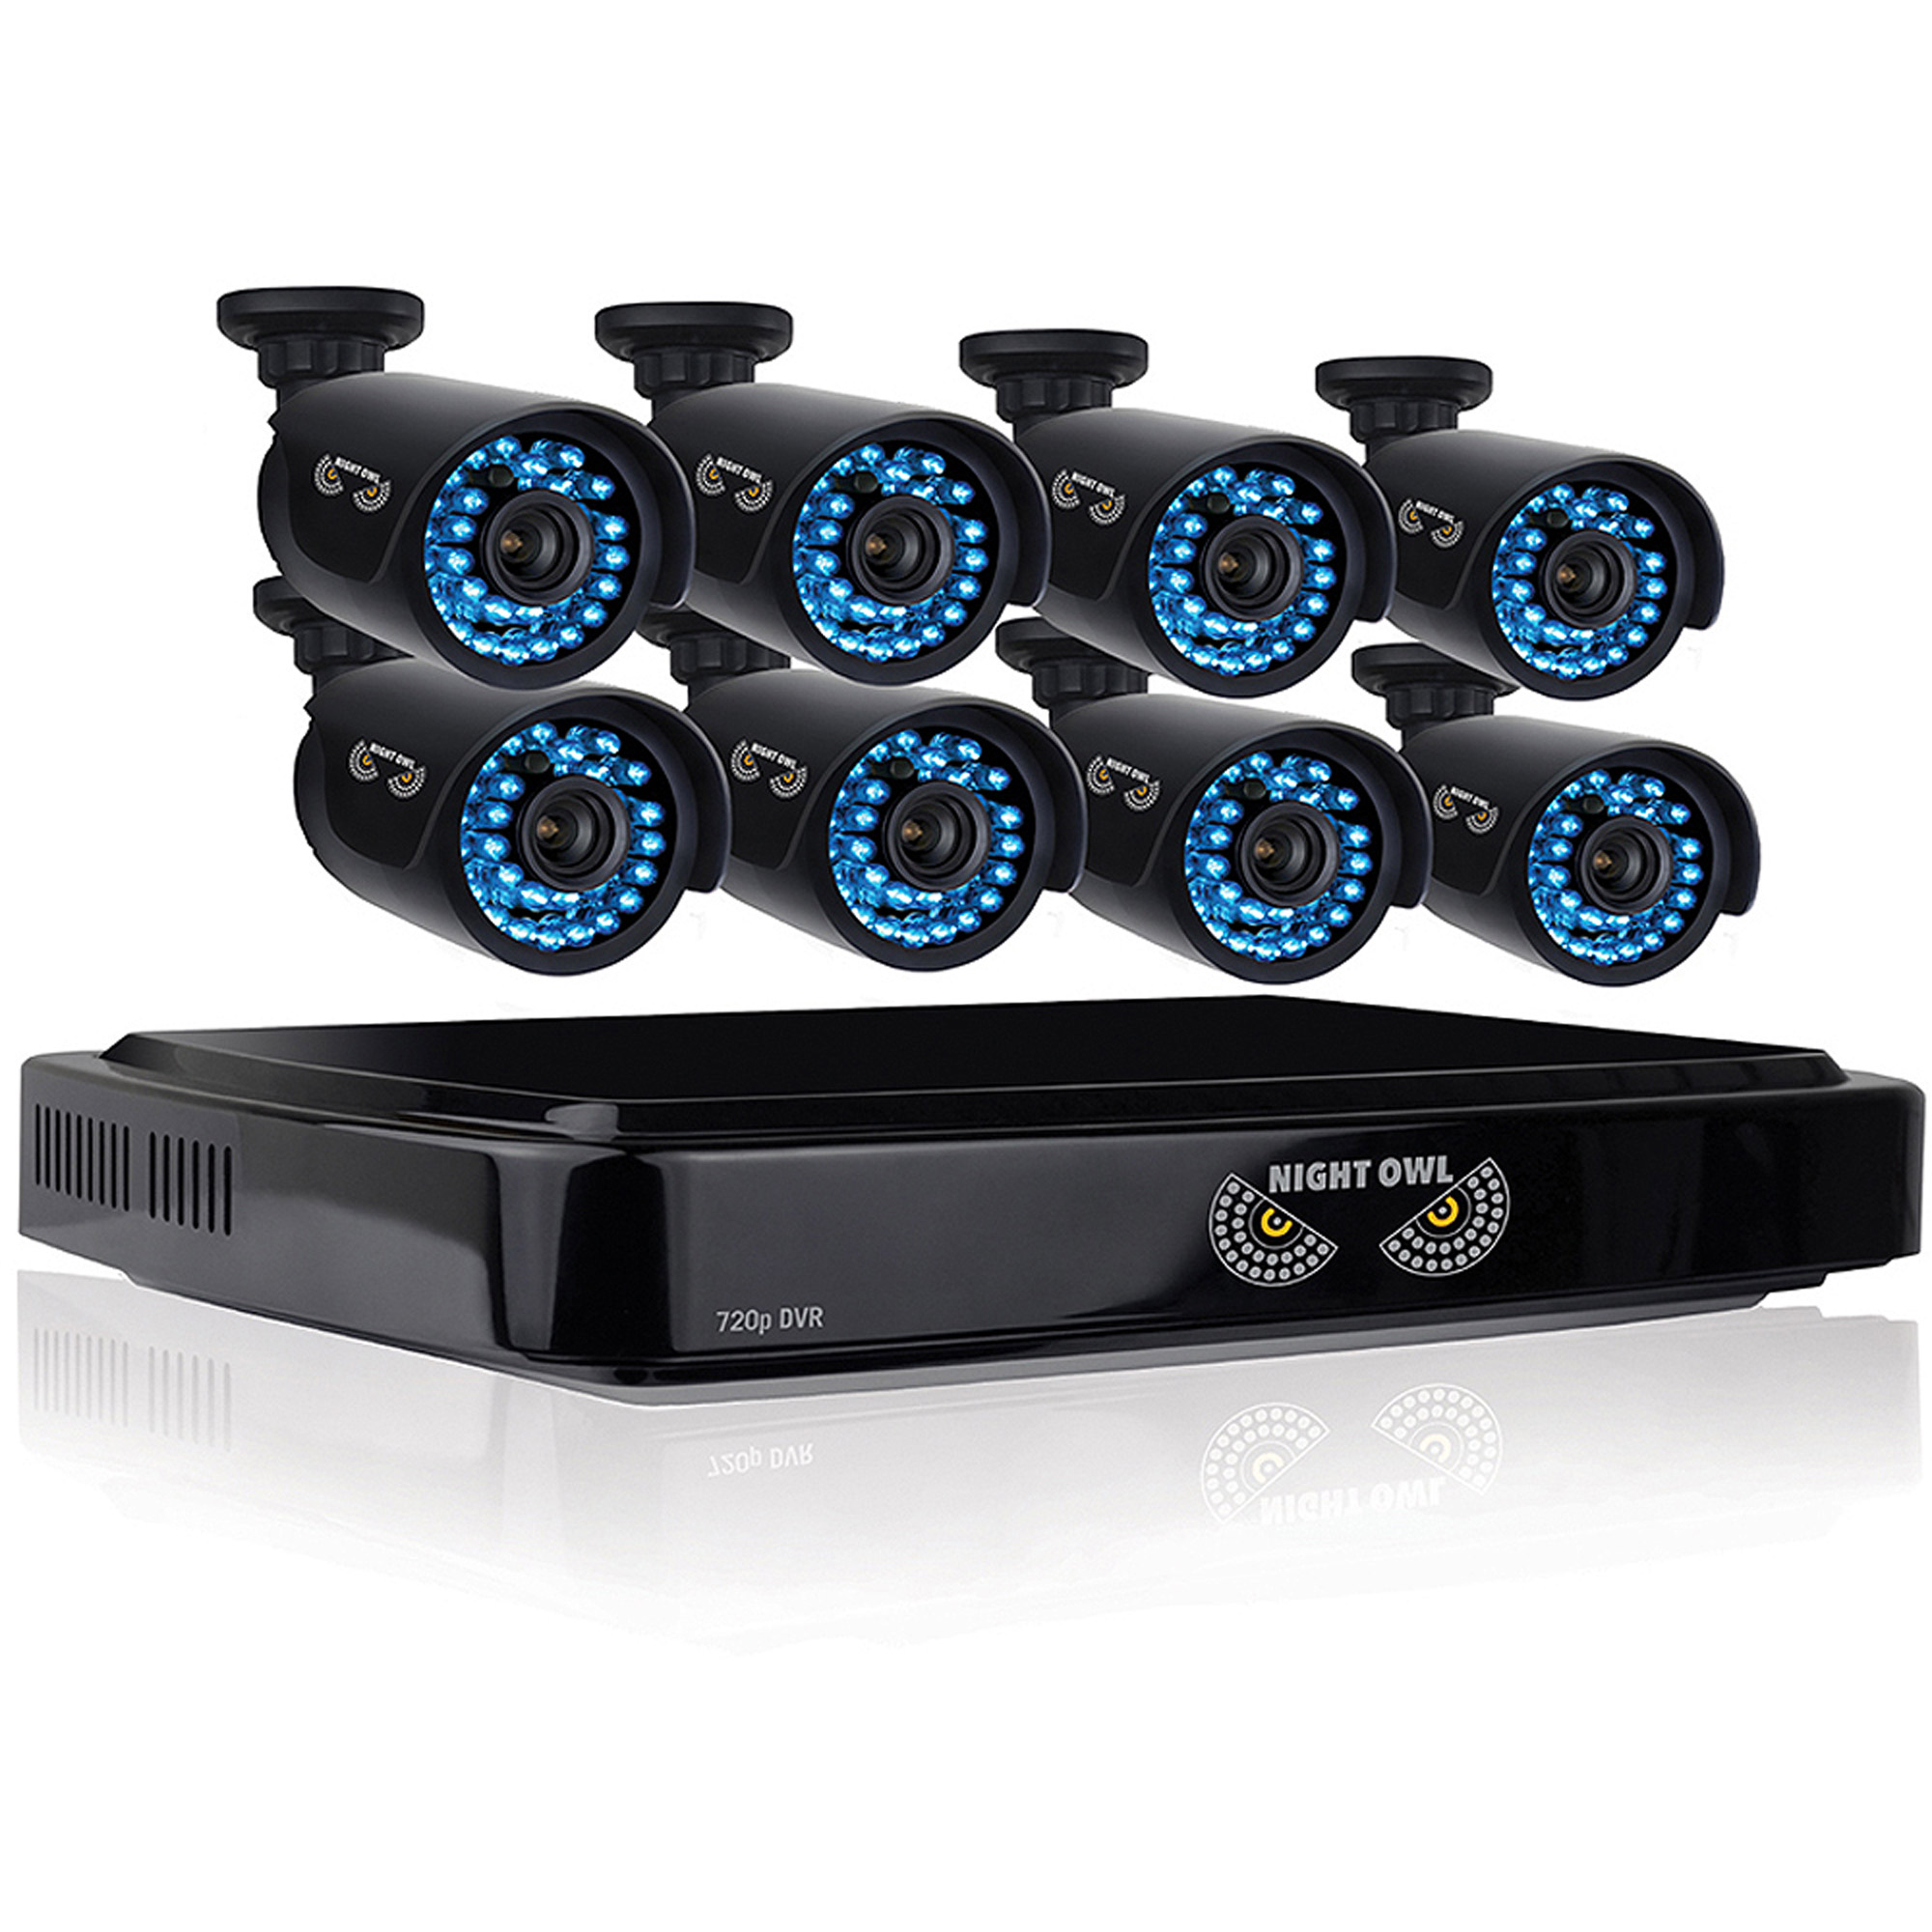 Night Owl B-A720-162-8 16-Channel Smart HD Video Security System with 2TB HDD and 8 x 720p HD Cameras